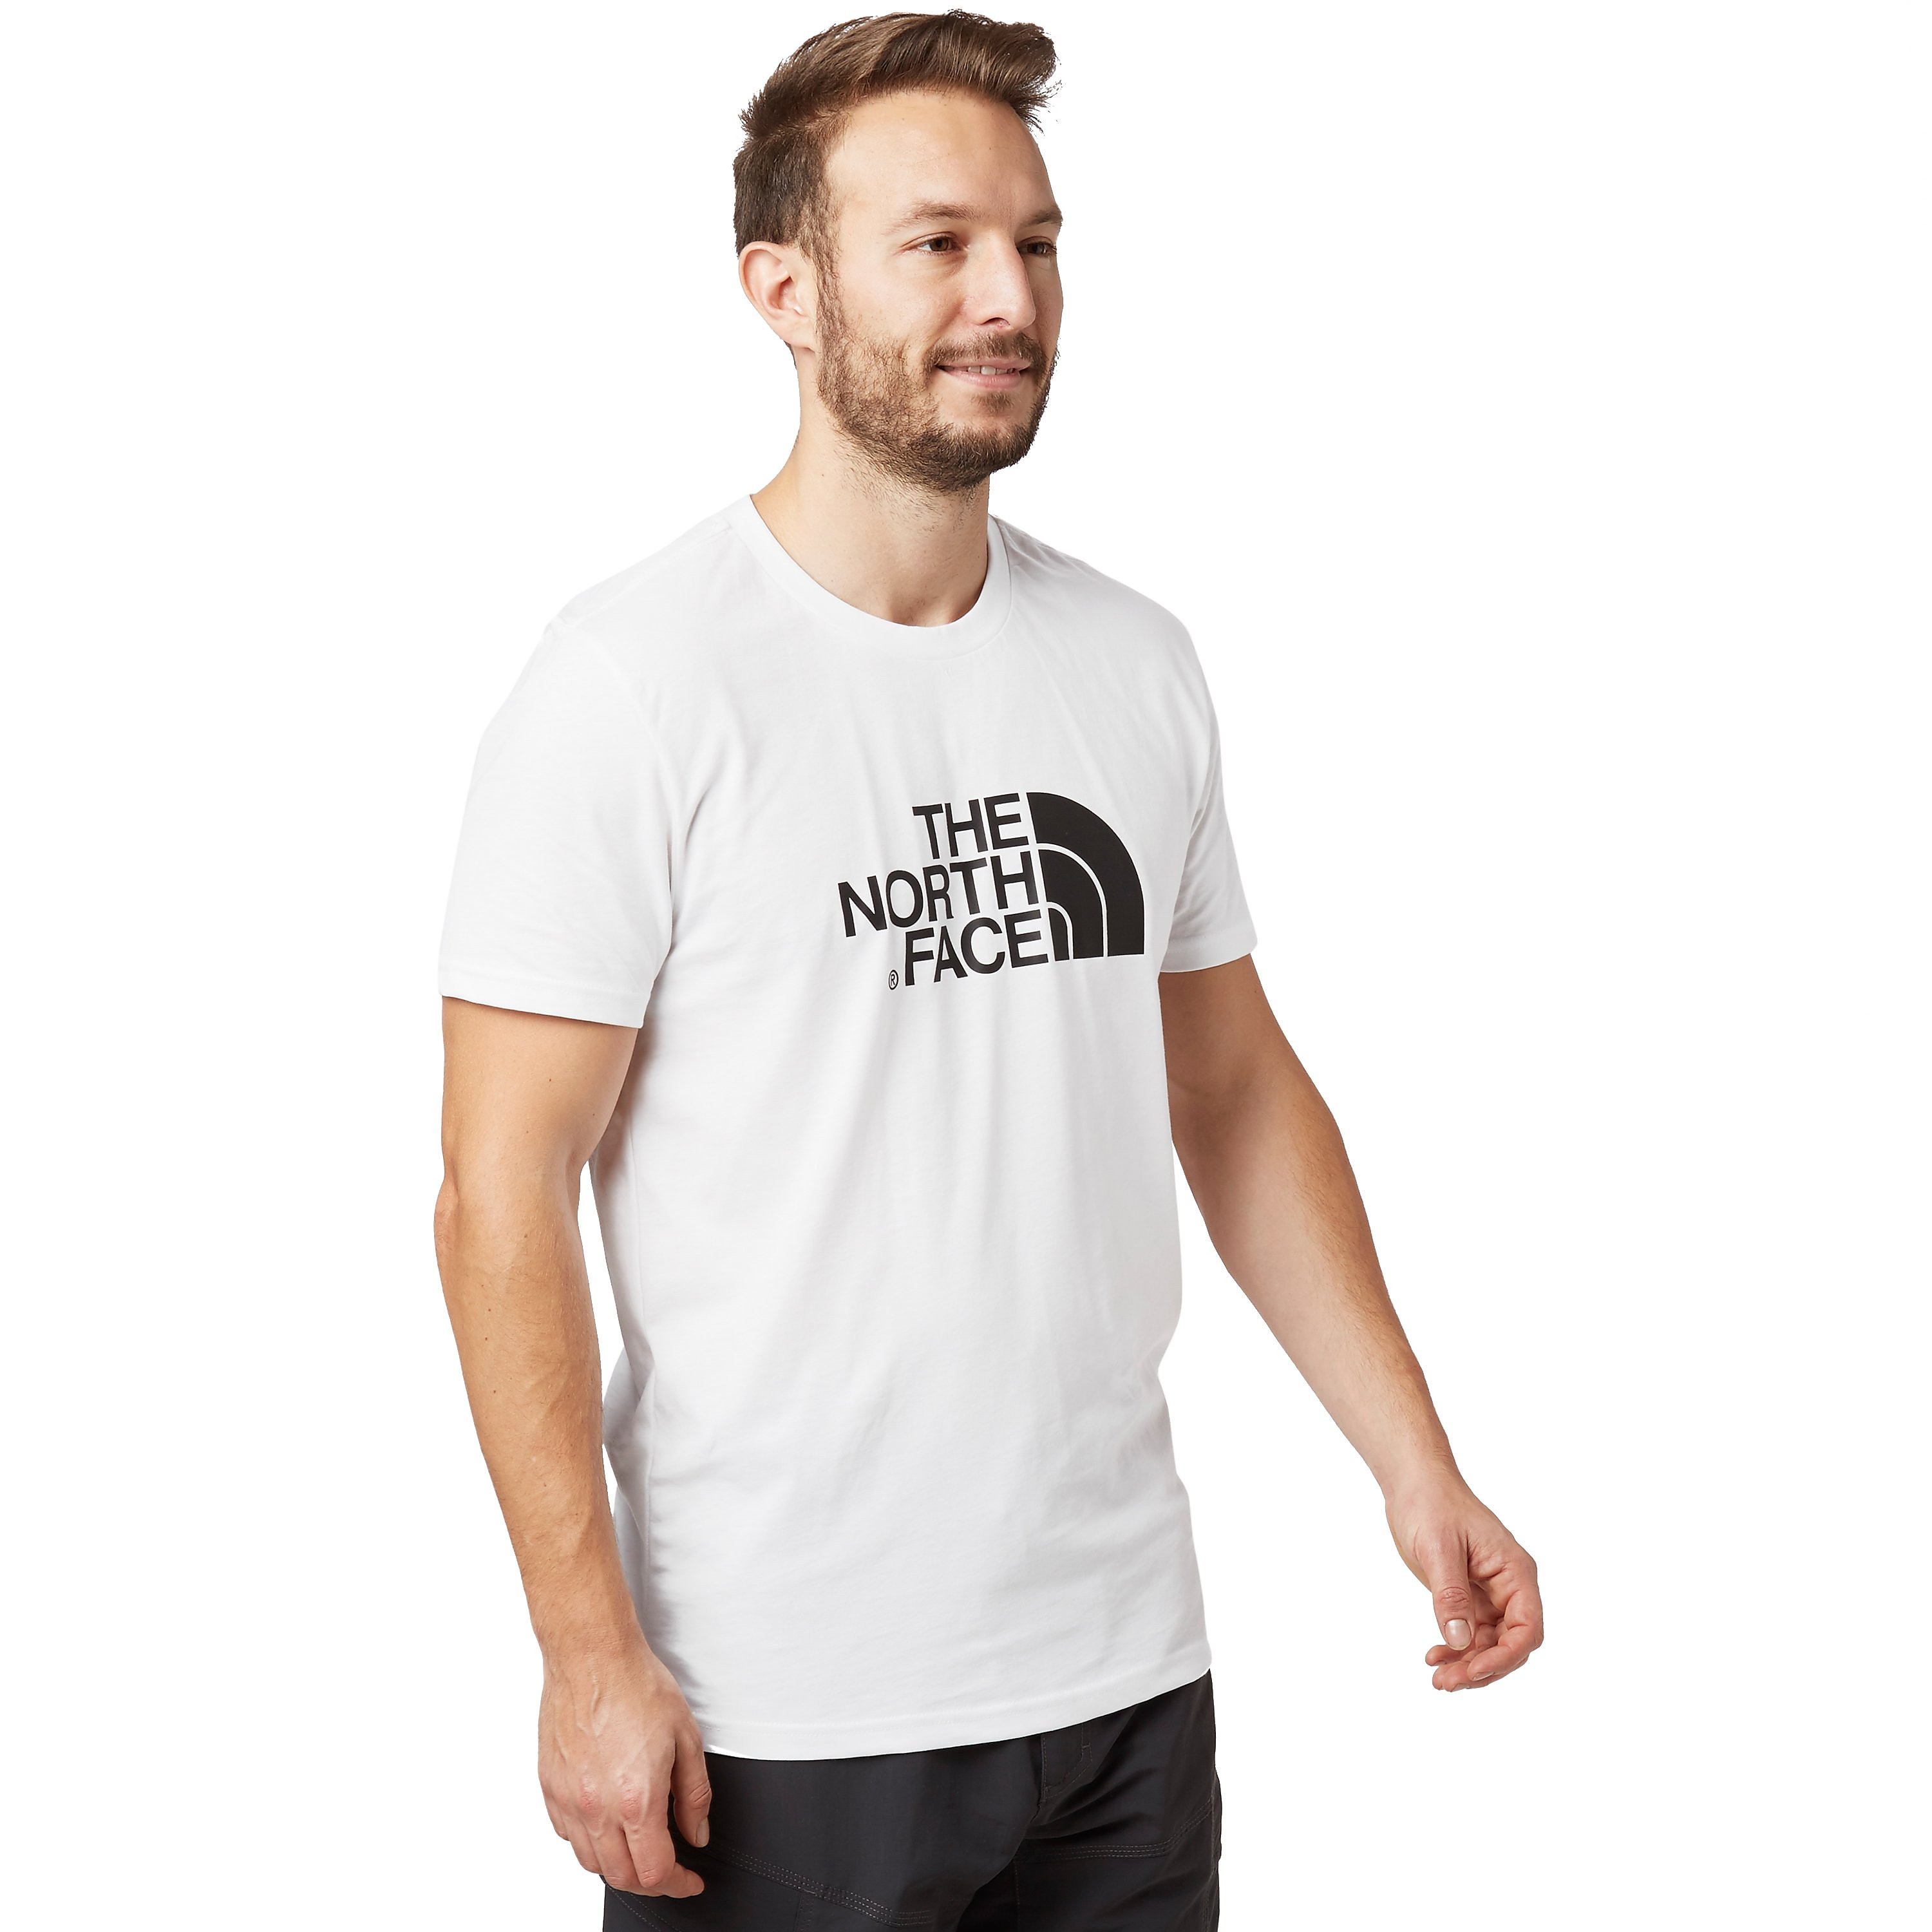 The North Face Men's Branded T-shirt